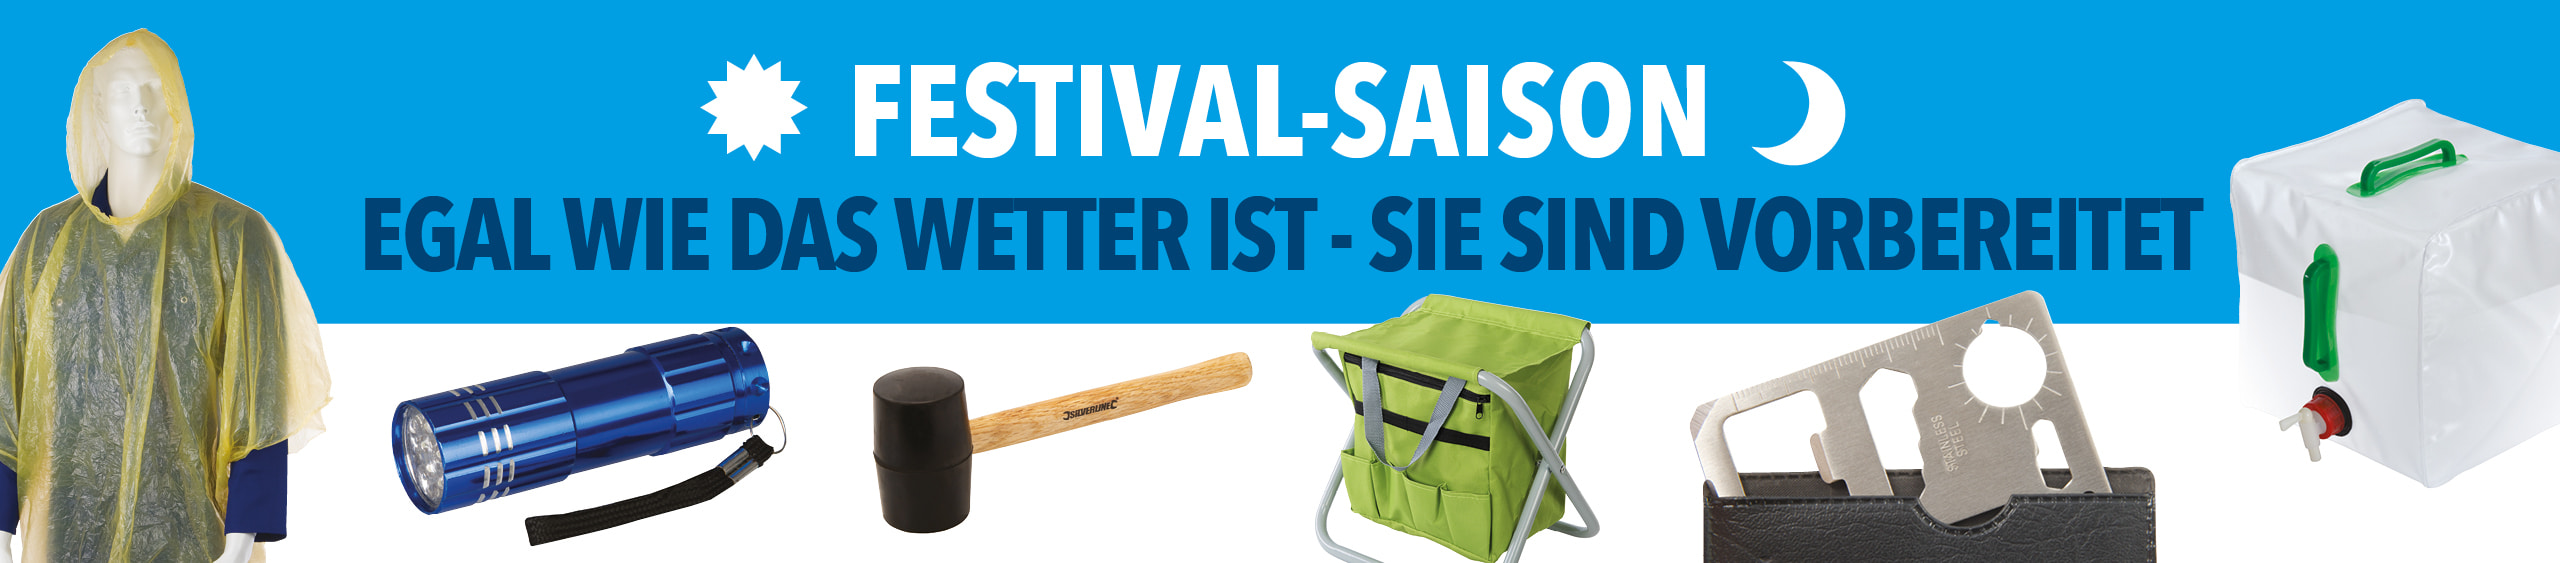 SILVERLINE_TOOLS_FESTIVAL_SEASON